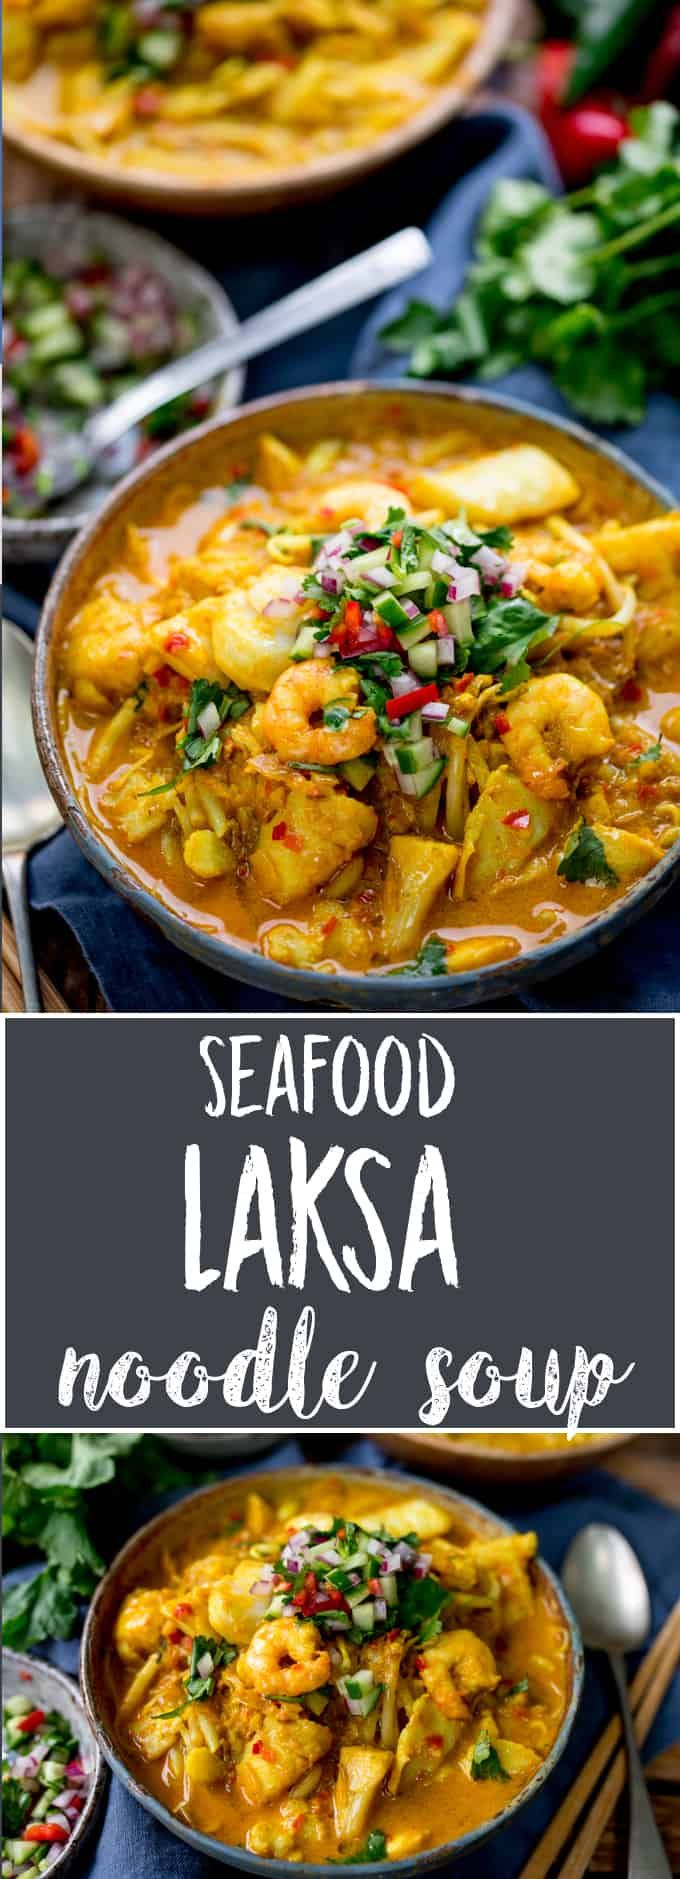 Got a Thai food craving? Why not try this super delicious Thai Seafood Laksa. Agreat way to get a fabulous Thai meal on the table quickly, using only one pan and ready in less than 30 minutes. If you like Thai food like I do then you will LOVE this! #laska #laksacurry #seafood #currypaste #glutenfreecurry #fishcurry via @kitchensanc2ary